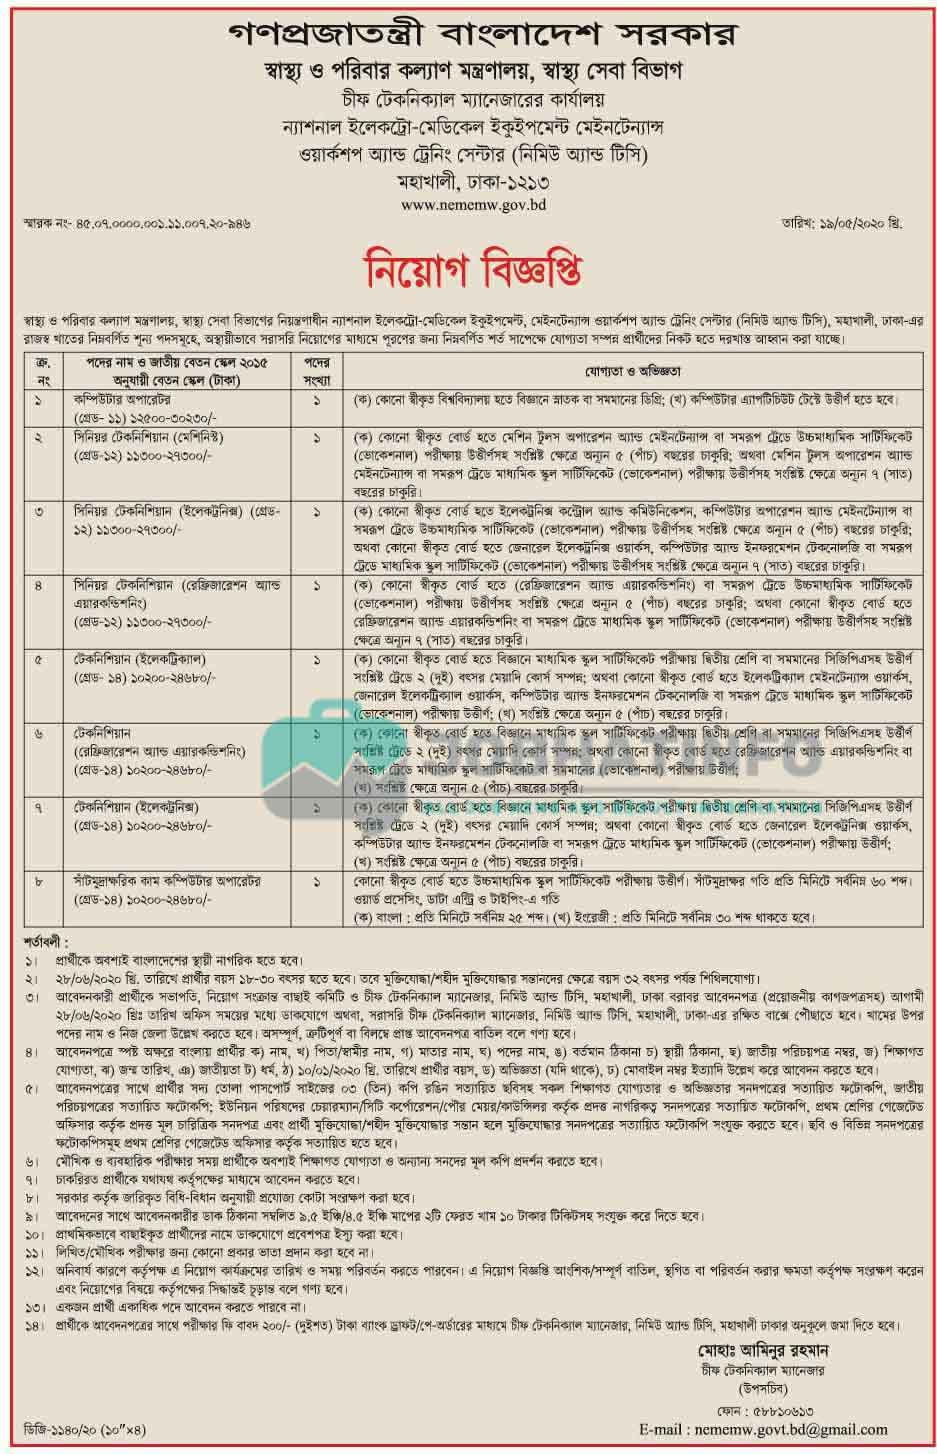 HSD Job Circular 2020 | Health Services Division | Apply from Today 1